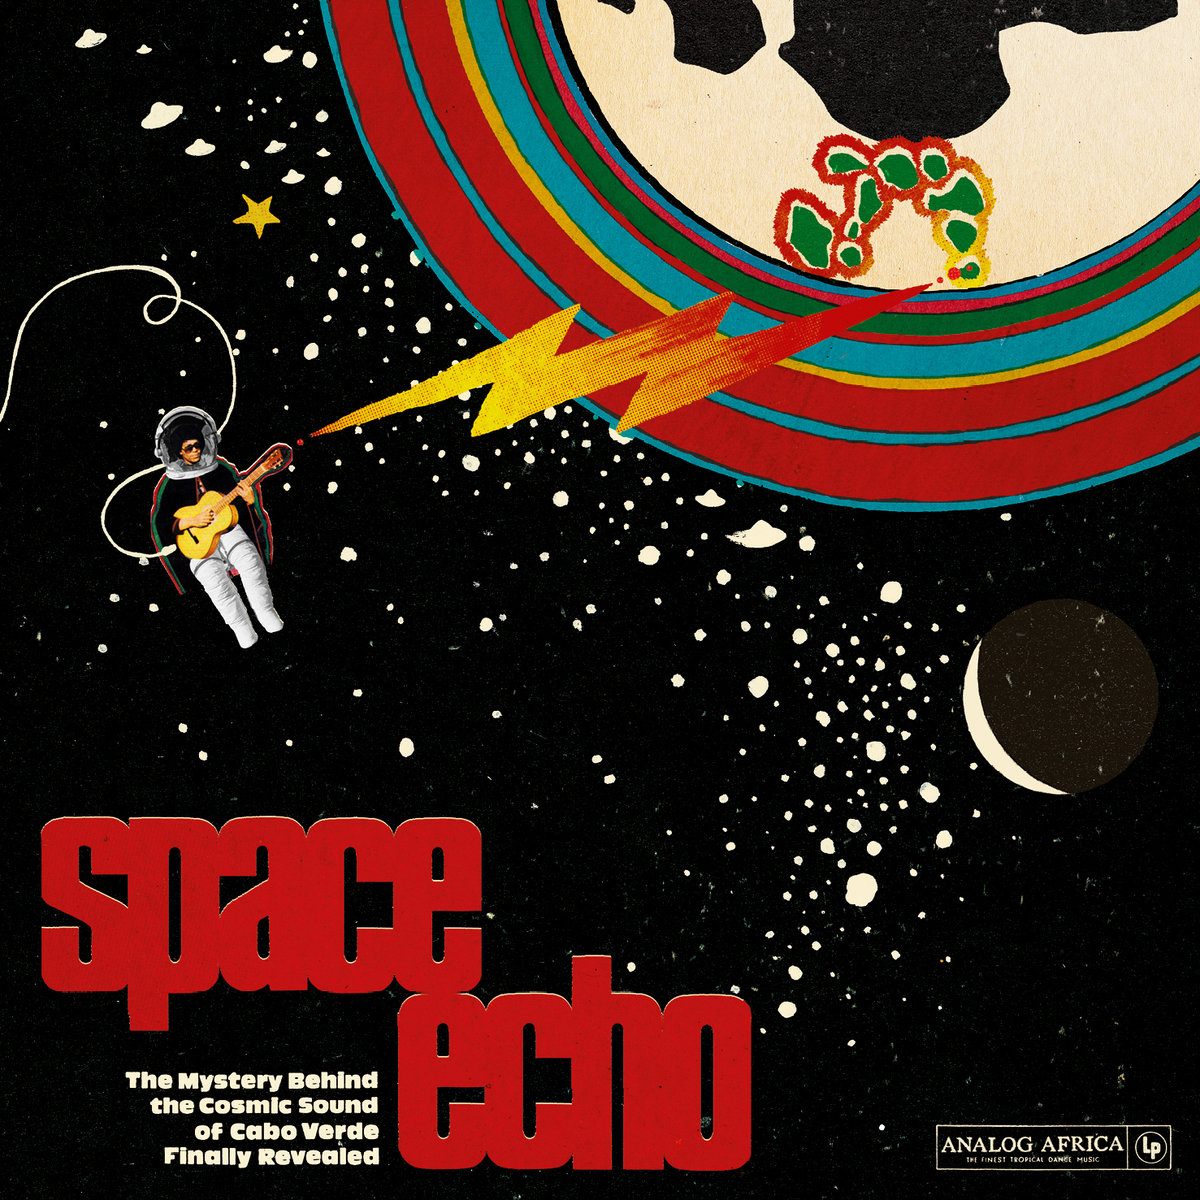 Space Echo - The Mystery Behind the Cosmic Sound of Cabo Verde Finally Revealed  Release Date: June 10, 2016 Label: Analog Africa  SERVICE: Restoration, Mastering SOURCE MATERIAL: Vinyl Records NUMBER OF DISCS: 1 GENRE: Cosmic Afro Funk FORMAT: CD and LP